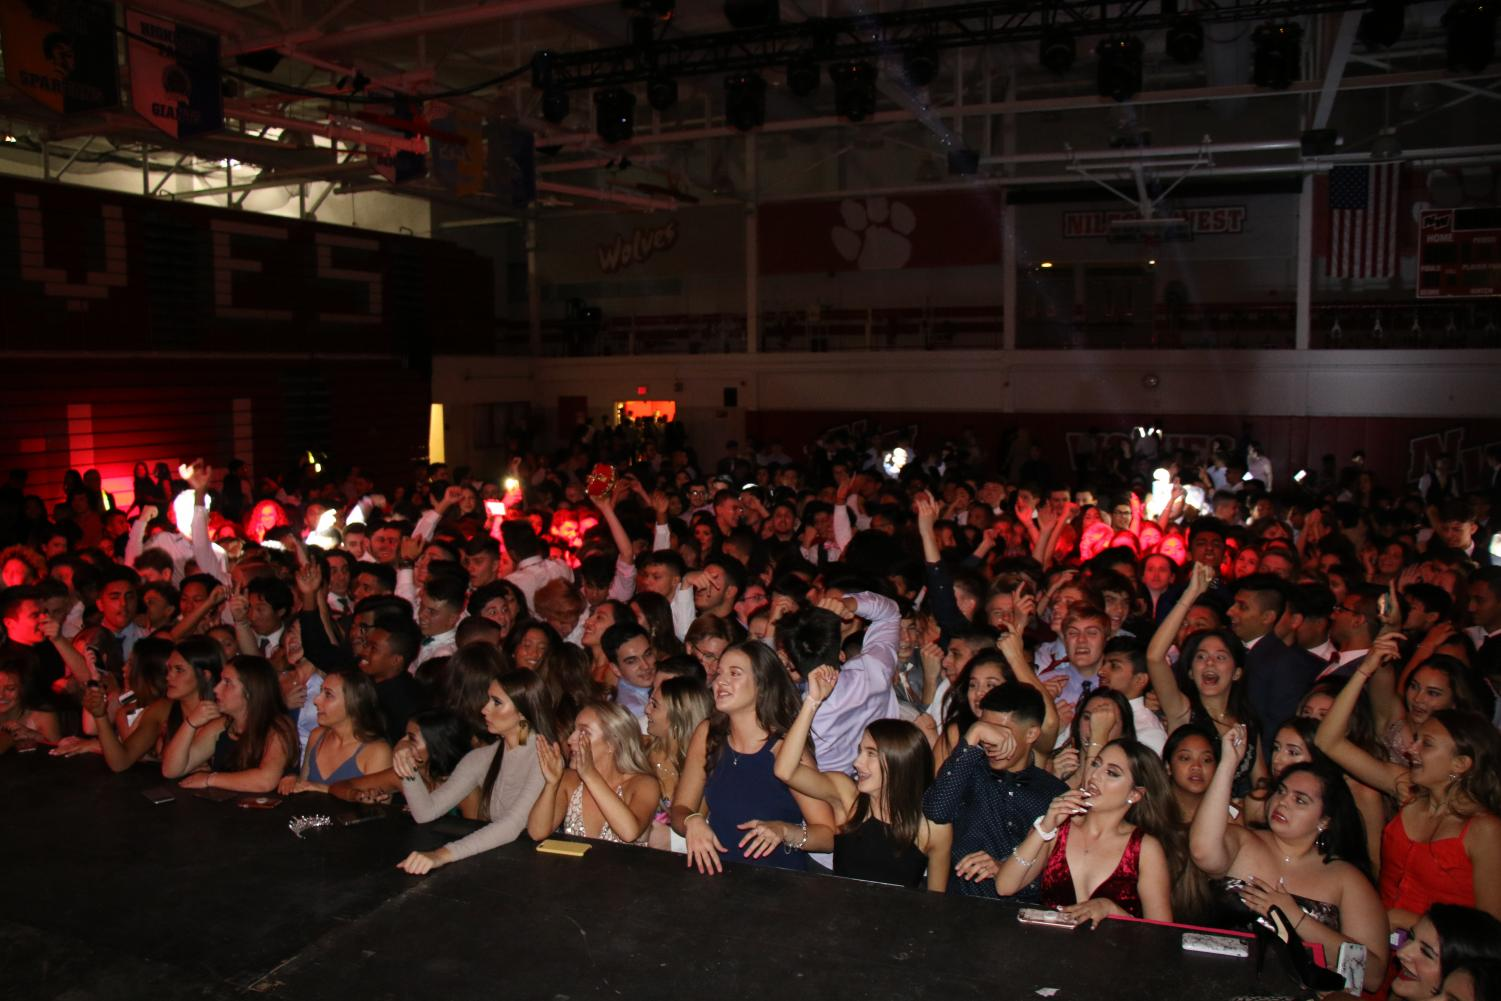 Students crowd the stage to watch the DJ and be closer to the music